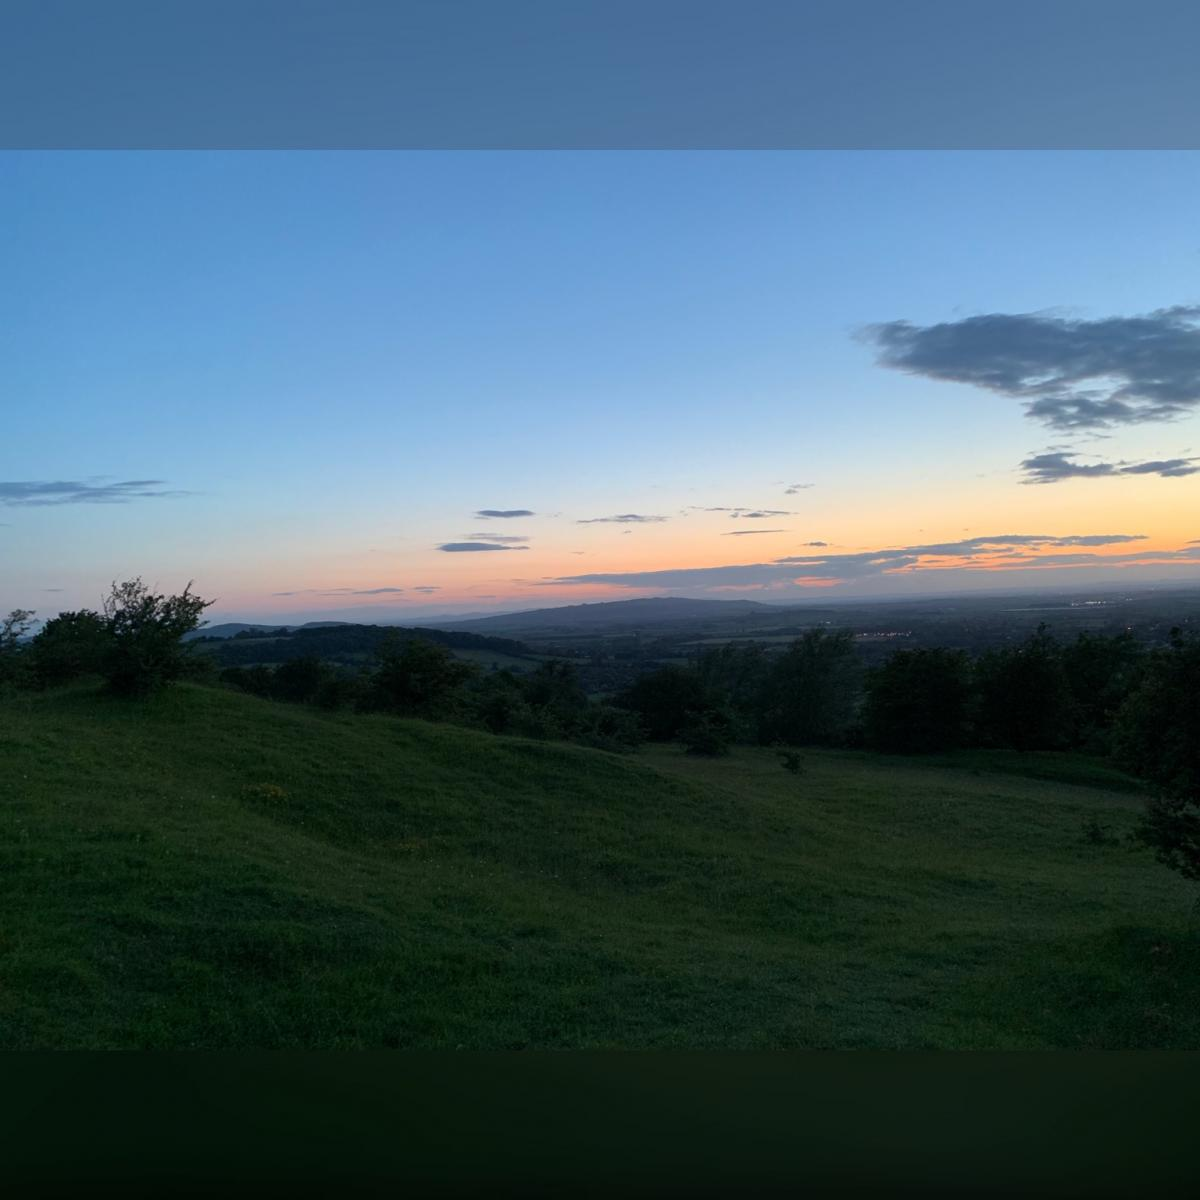 Sunset image taken 2 thirds of the way up the hill to Broadway Tower, the Malvern Hills sneak into the background